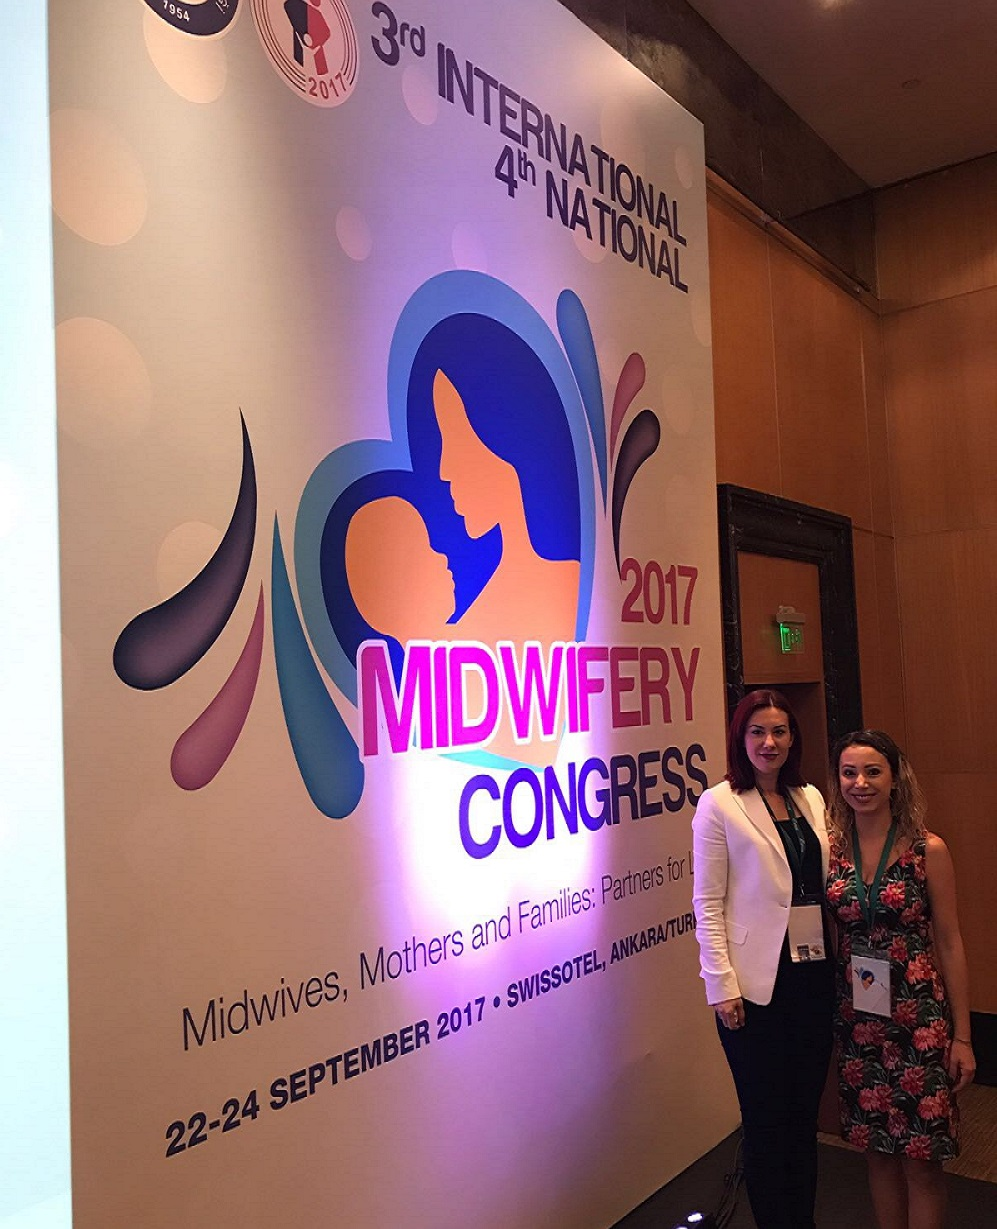 Near East University Department of Midwifery has been represented at the 3rd International – 4th National Midwifery Congress